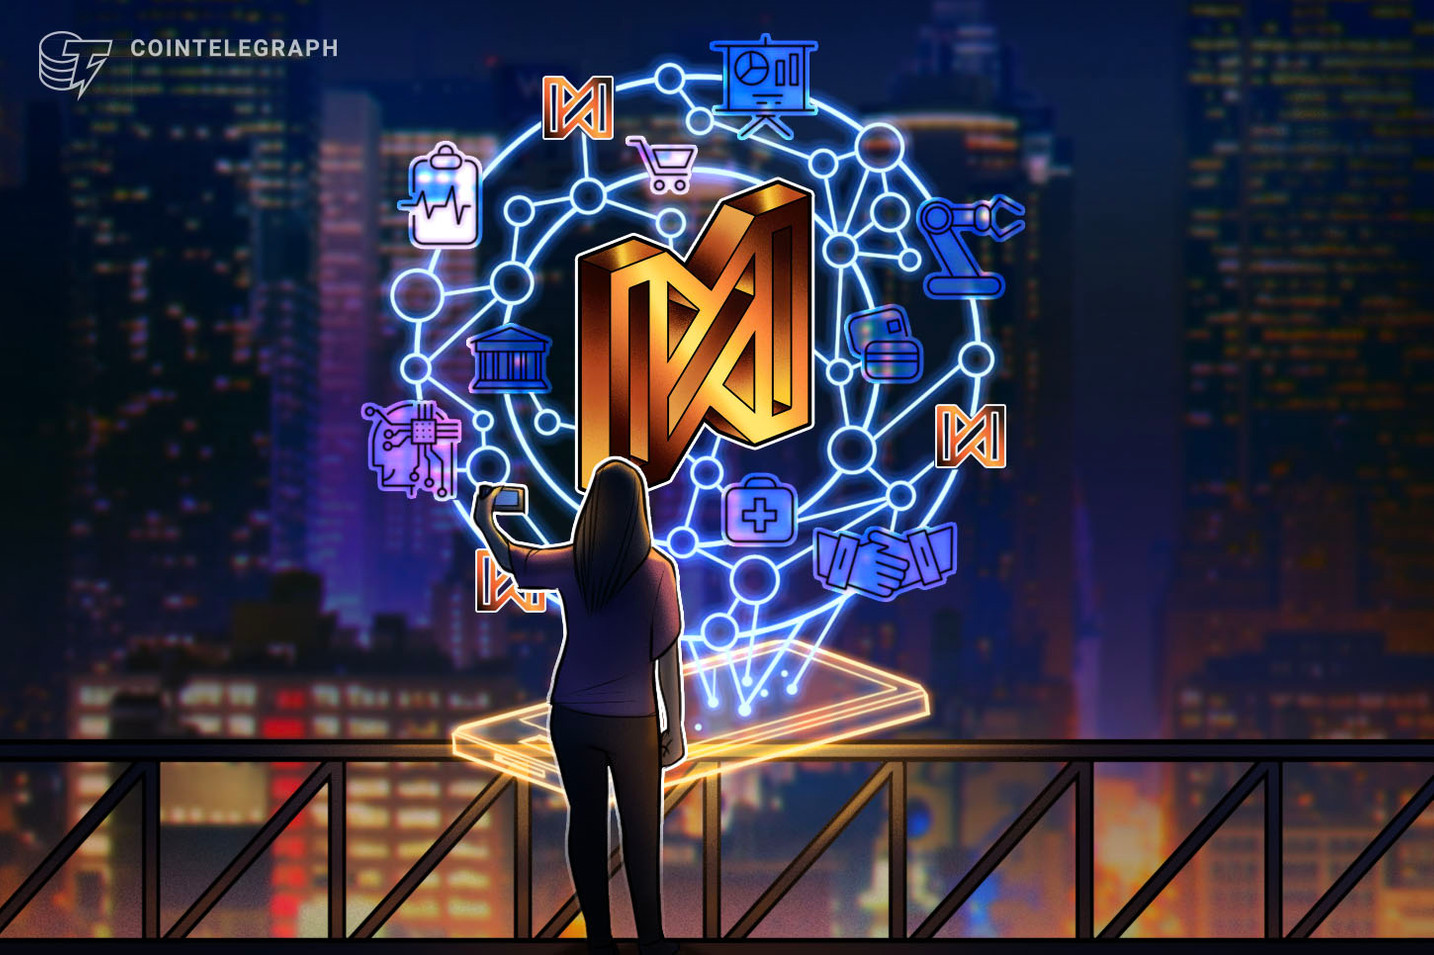 'Creating DApps Can Be Simple': Platform to Bring Decentralized Economy to Mass Adoption